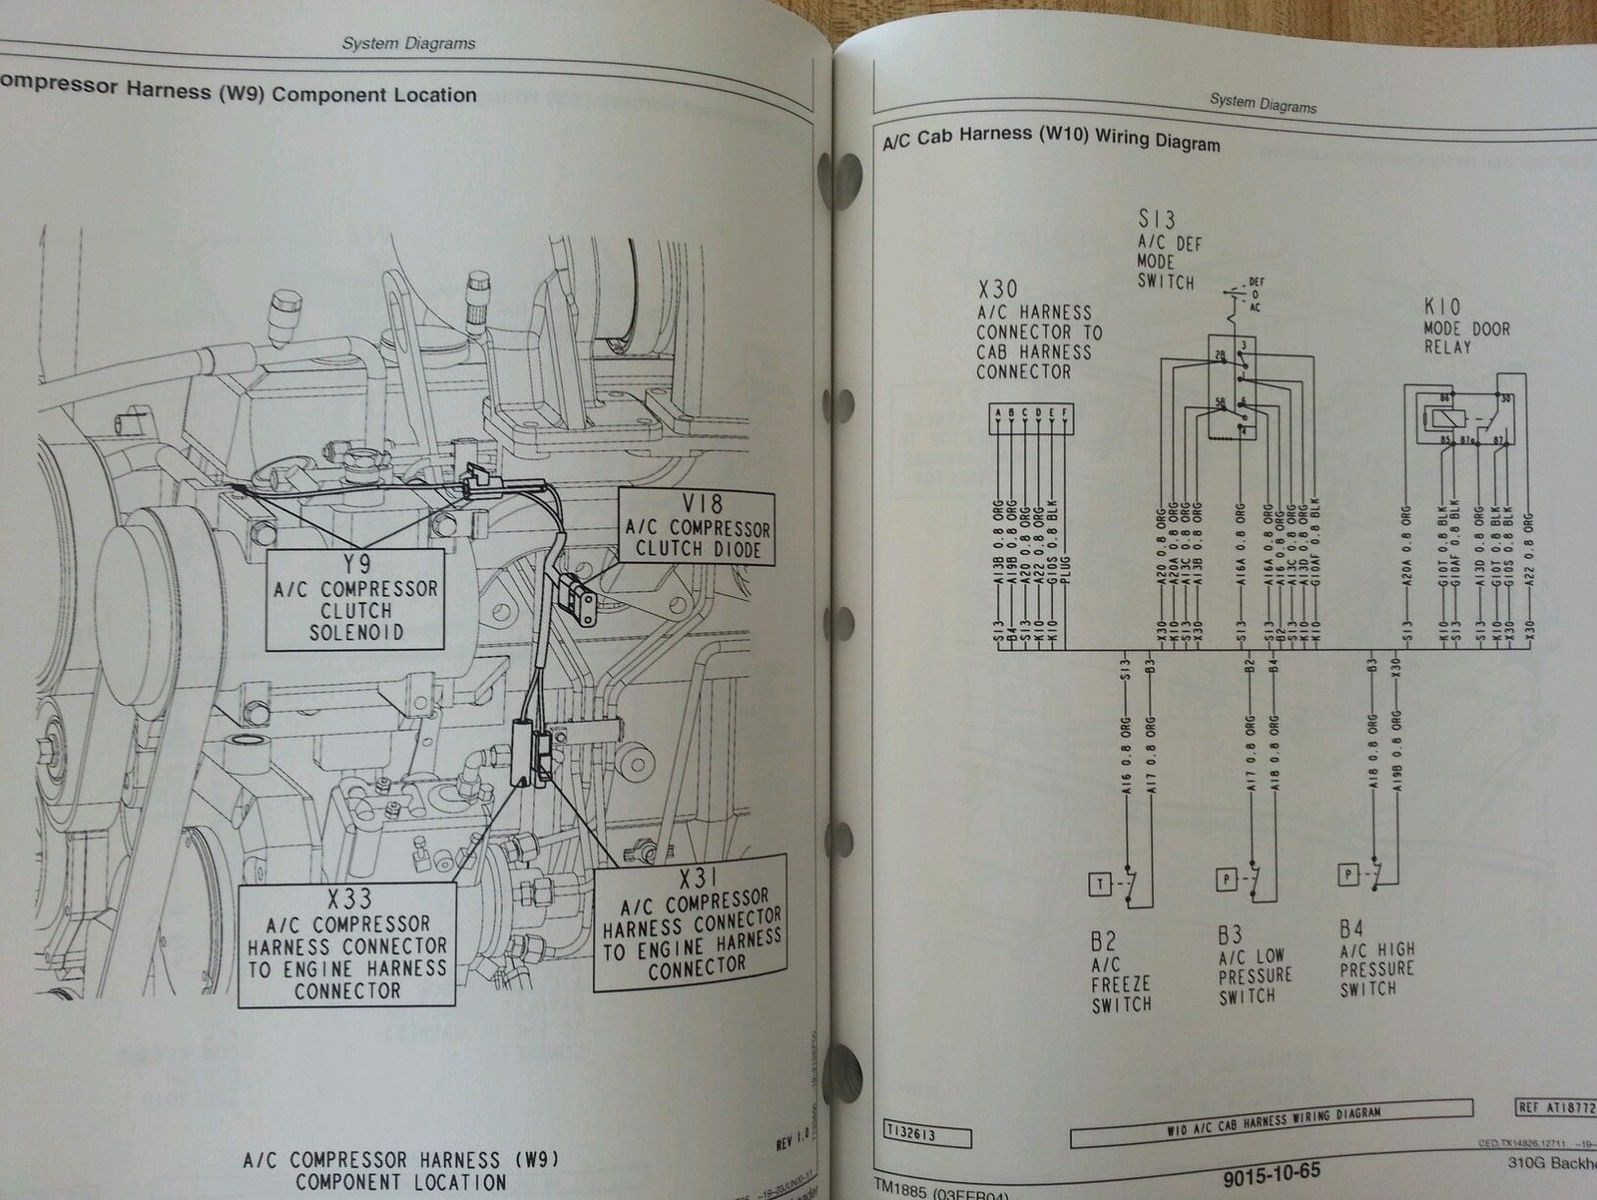 Backhoe Wiring Diagram Further John Deere Diagrams 310 Sg 32 Images Sd424282558 Jd 310g Loader Service Technical Operation Test Manual Tm1885 4